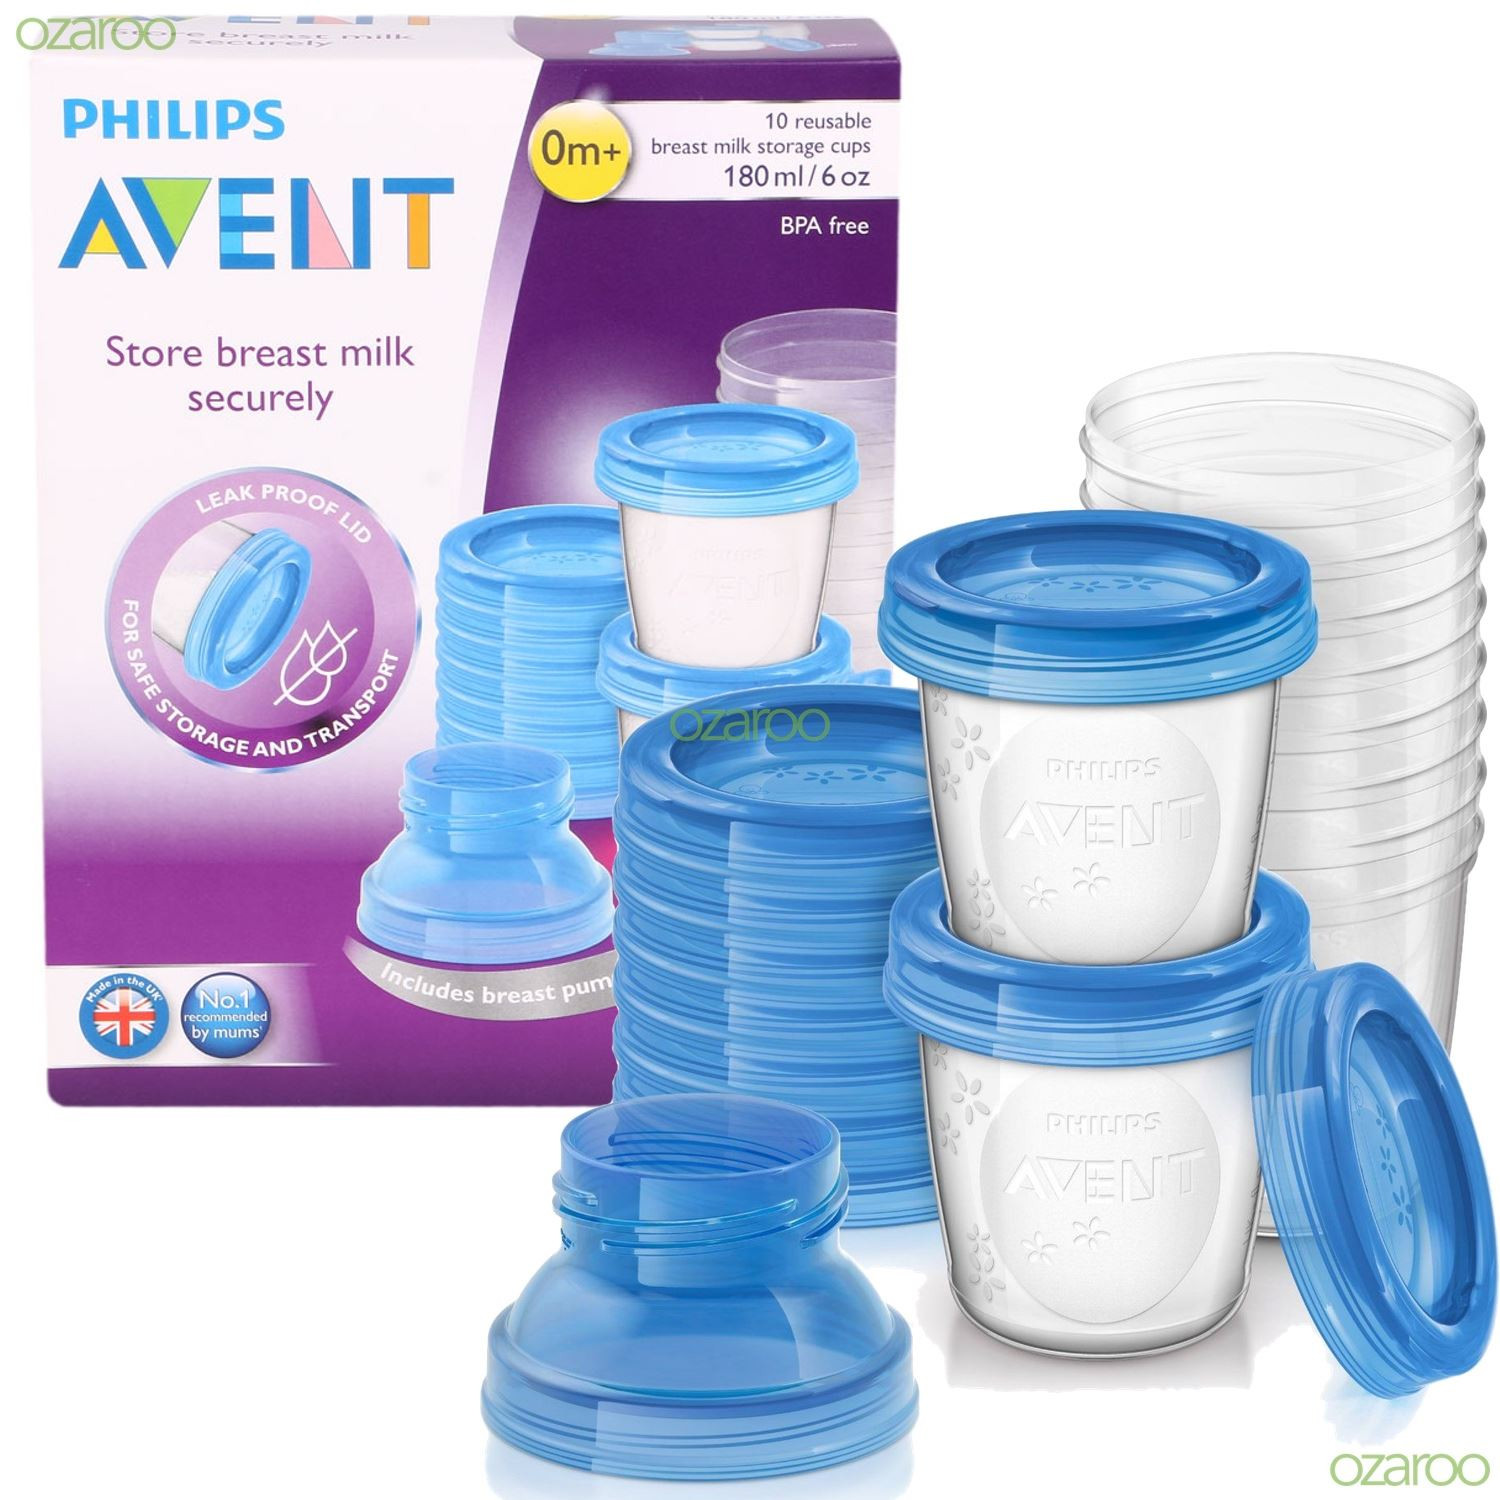 Best ideas about Baby Food Storage . Save or Pin New Philips Avent Reuseable 10 Breast Milk Baby Food Now.